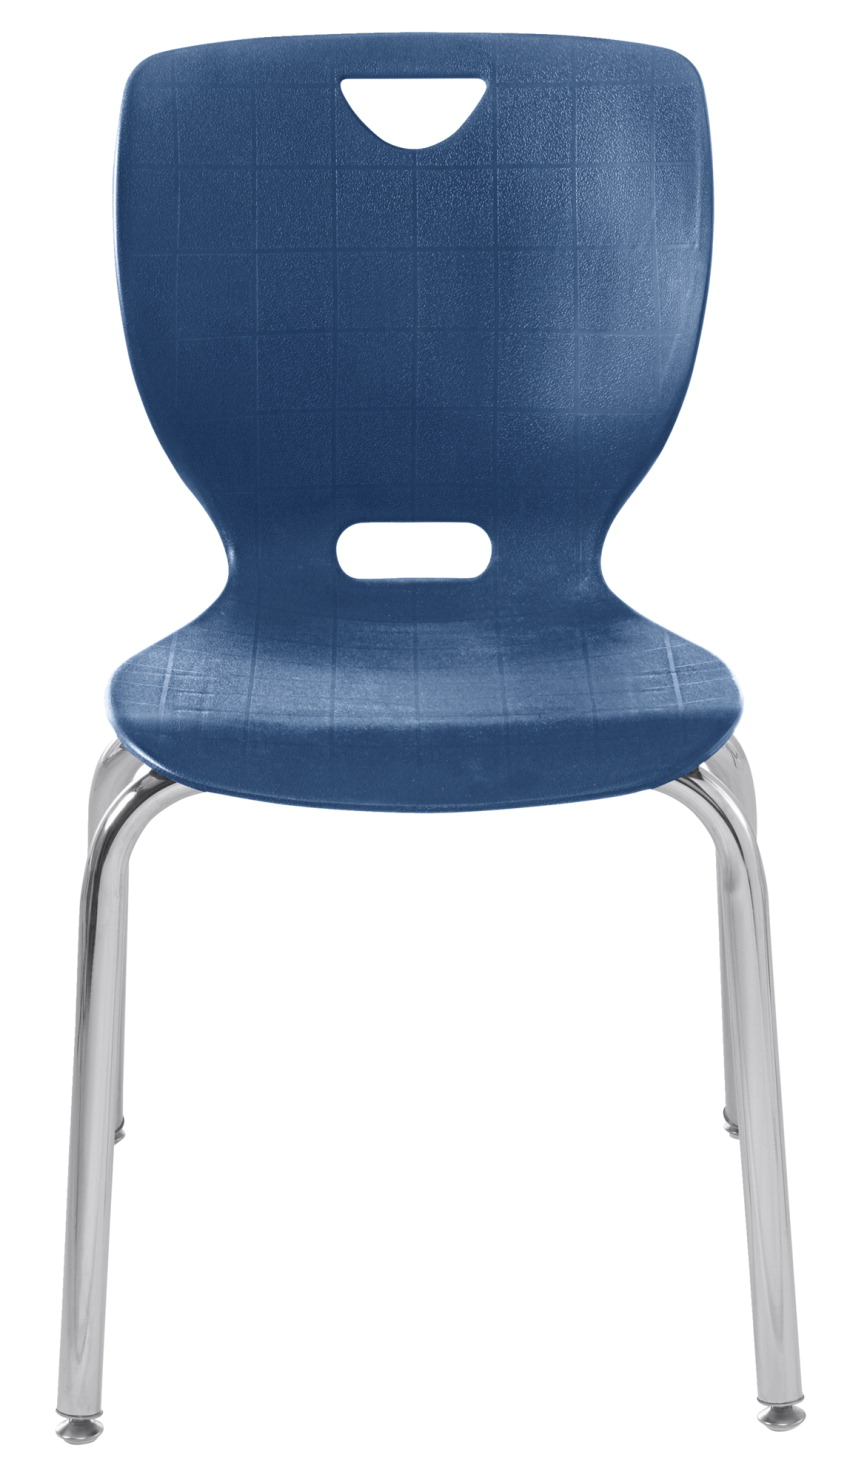 Classroom Select NeoClass Smooth Back Chair, Imperial Shell, Chrome Frame, Steel Glide, 16 Inch Seat Height, Chrome Frame